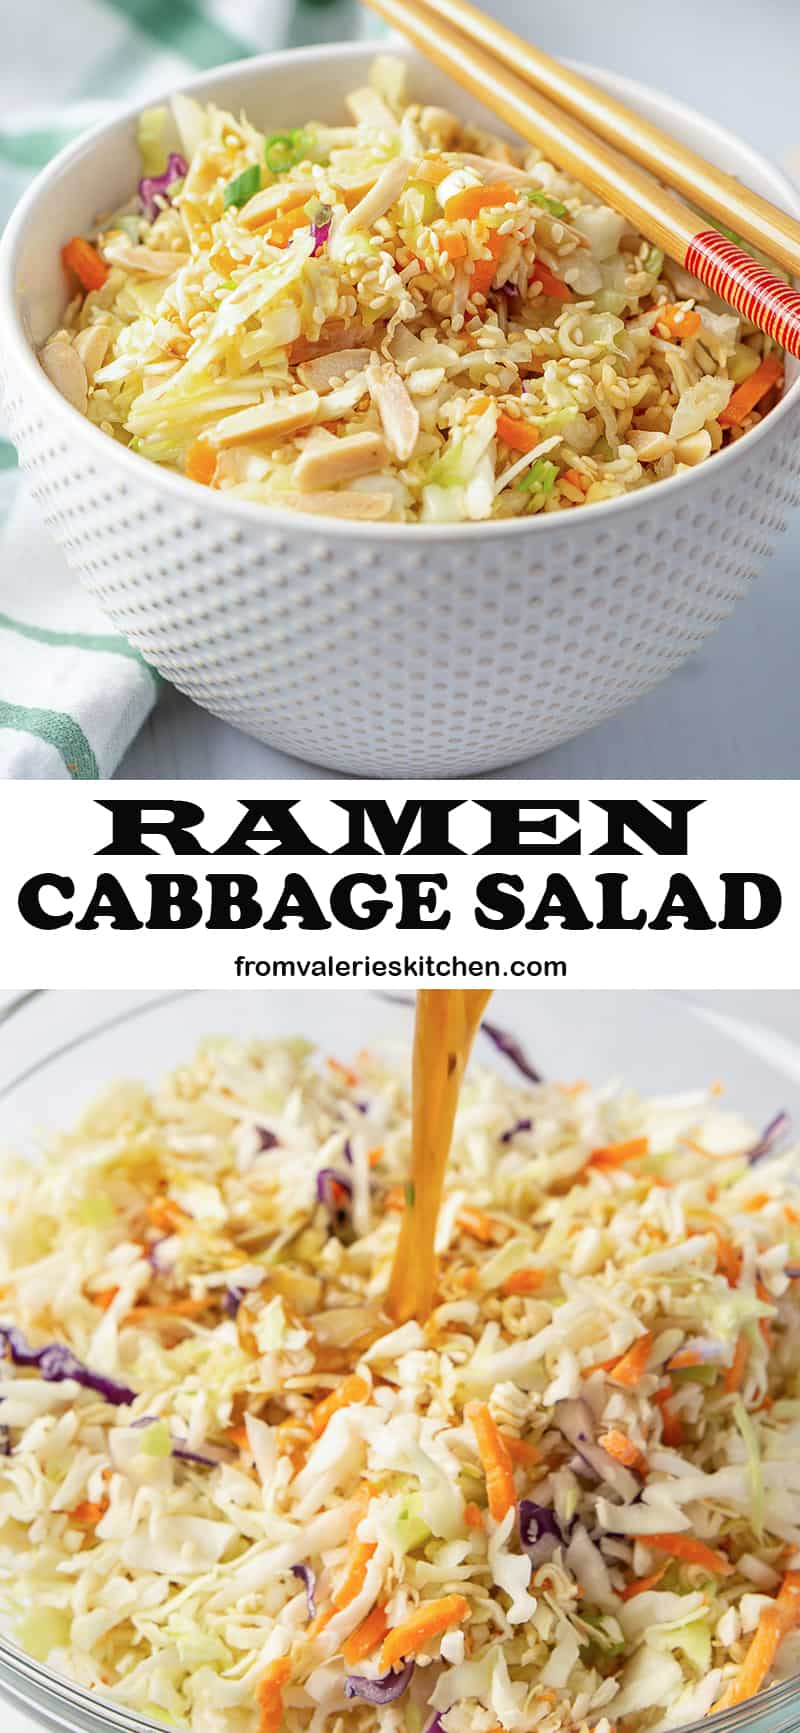 A two image vertical collage of Ramen Cabbage Salad with overlay text.